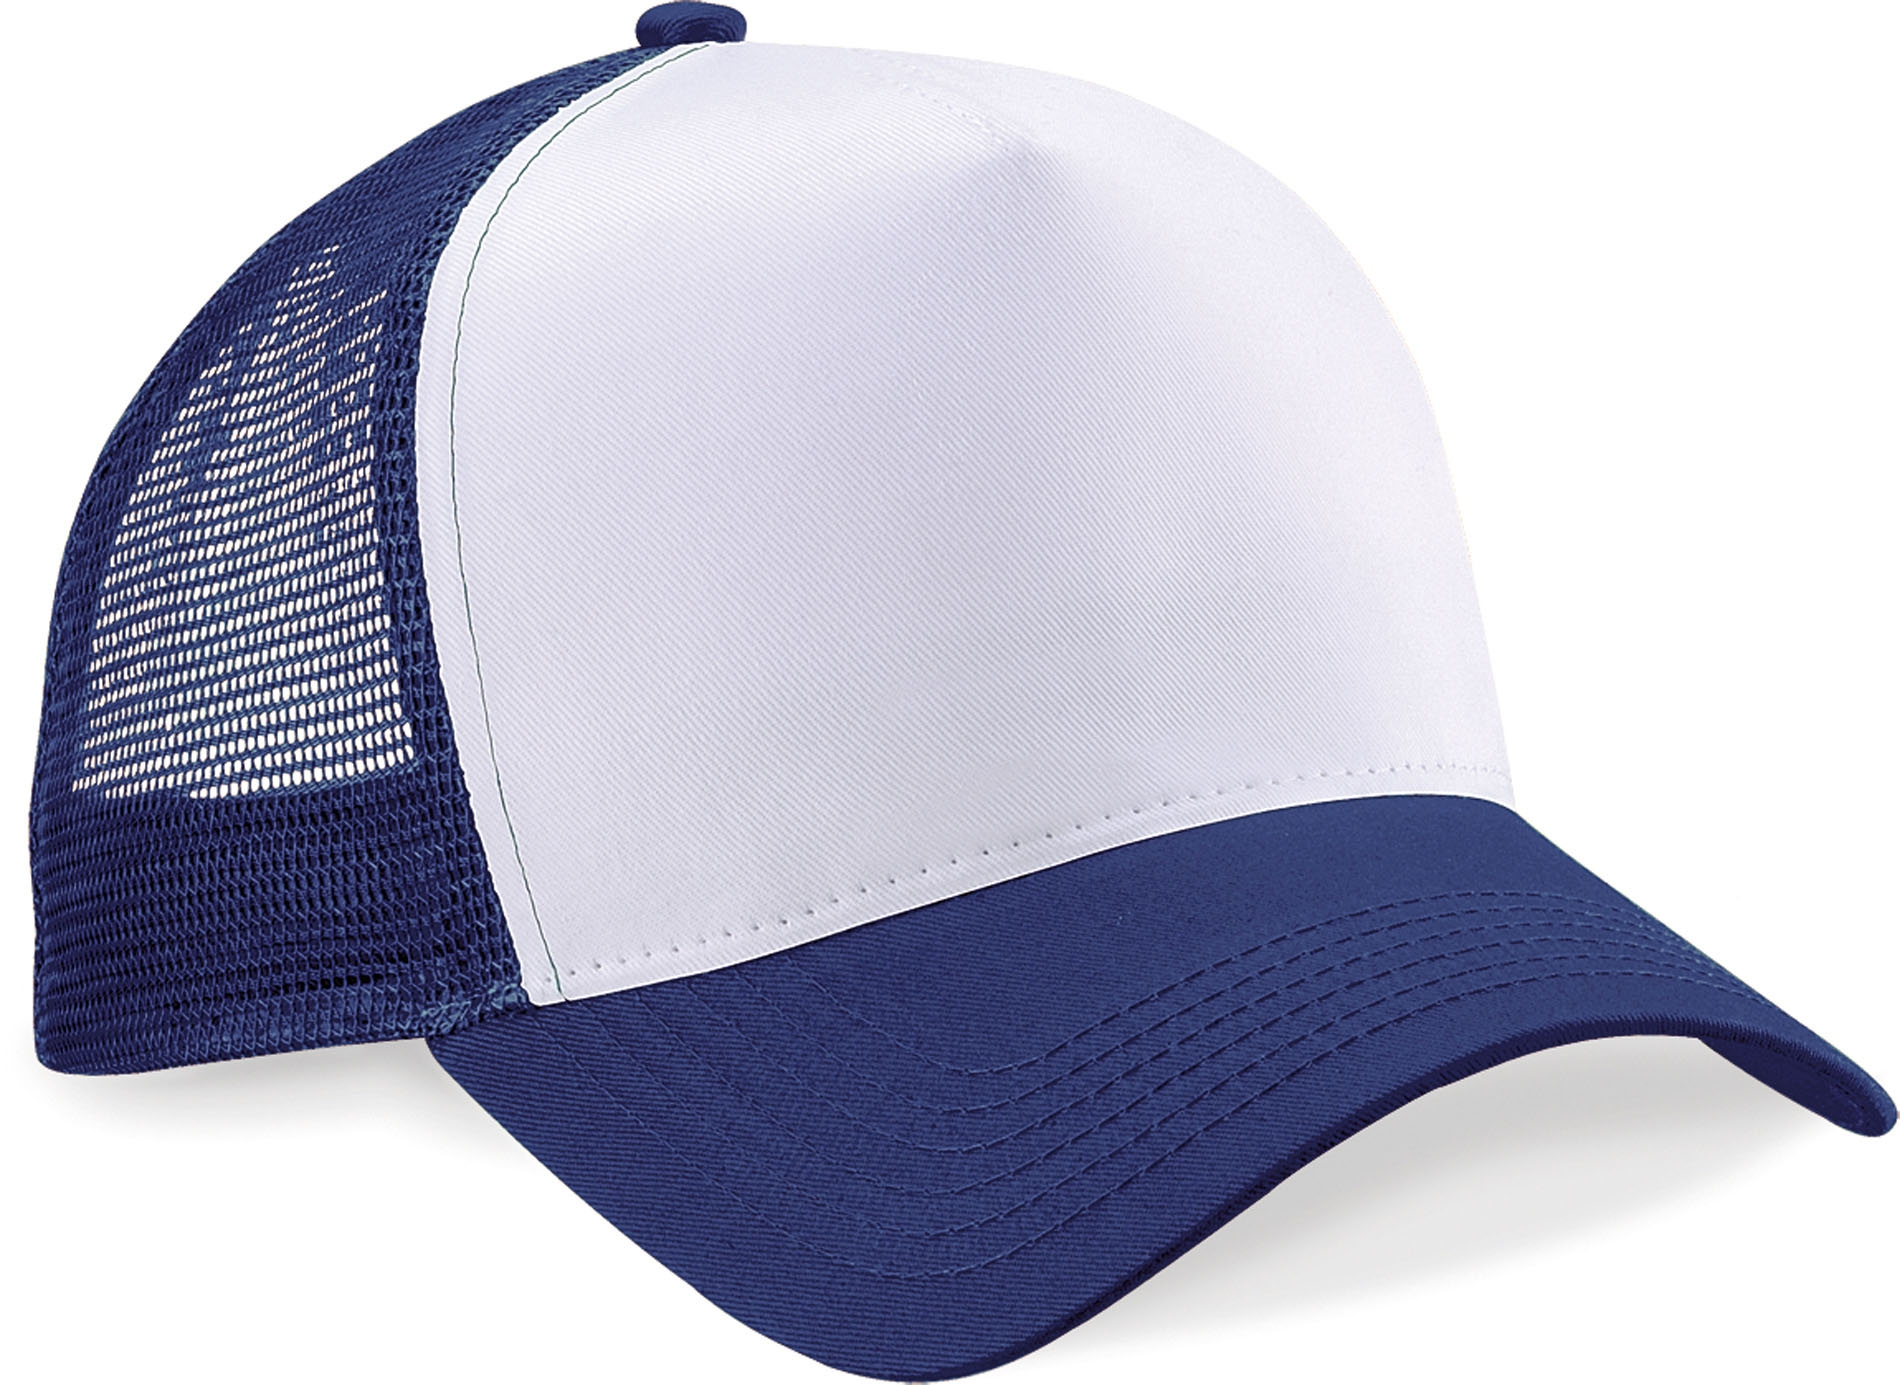 Casquette américaine French Navy / White Bleu